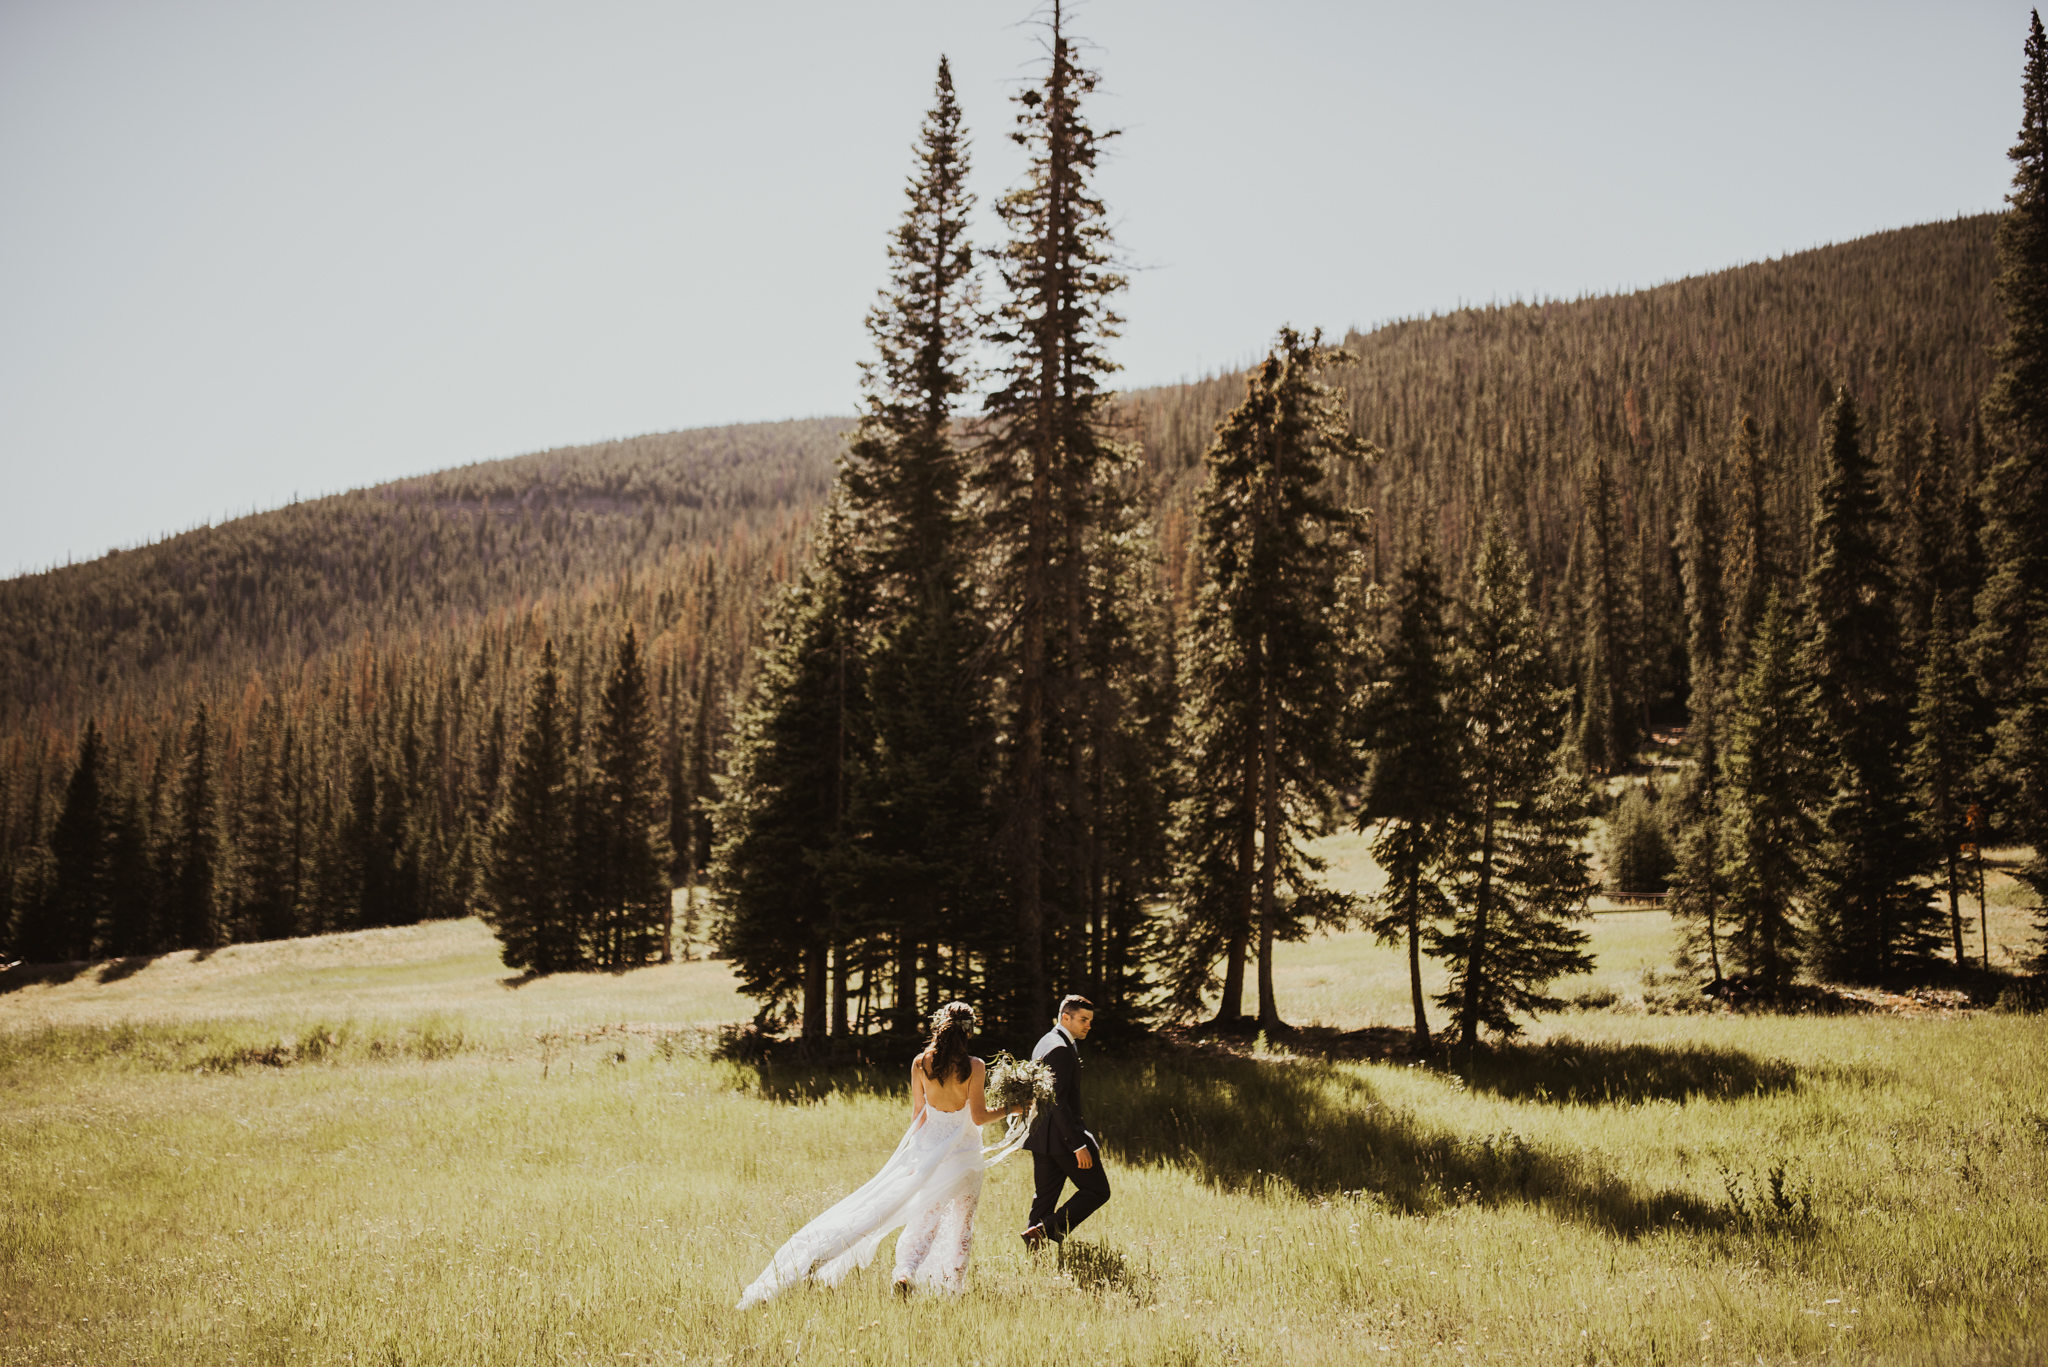 ©Isaiah + Taylor Photography - Estes National Park Adventure Elopement, Colorado Rockies-49.jpg